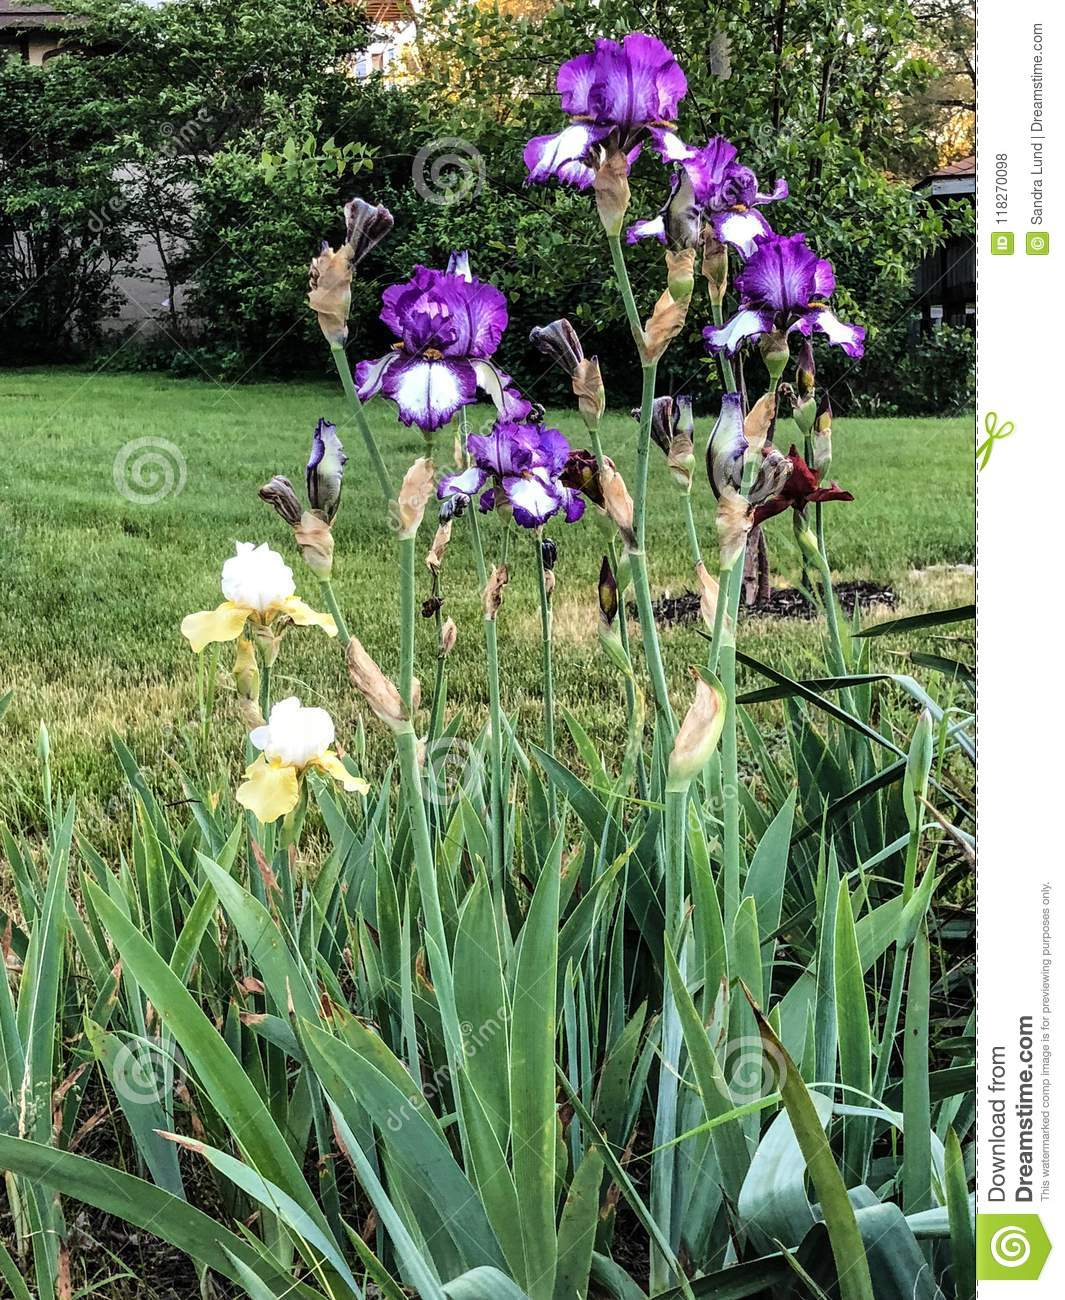 Tall Purple And White Flowers In Garden Stock Photo Image Of Grass